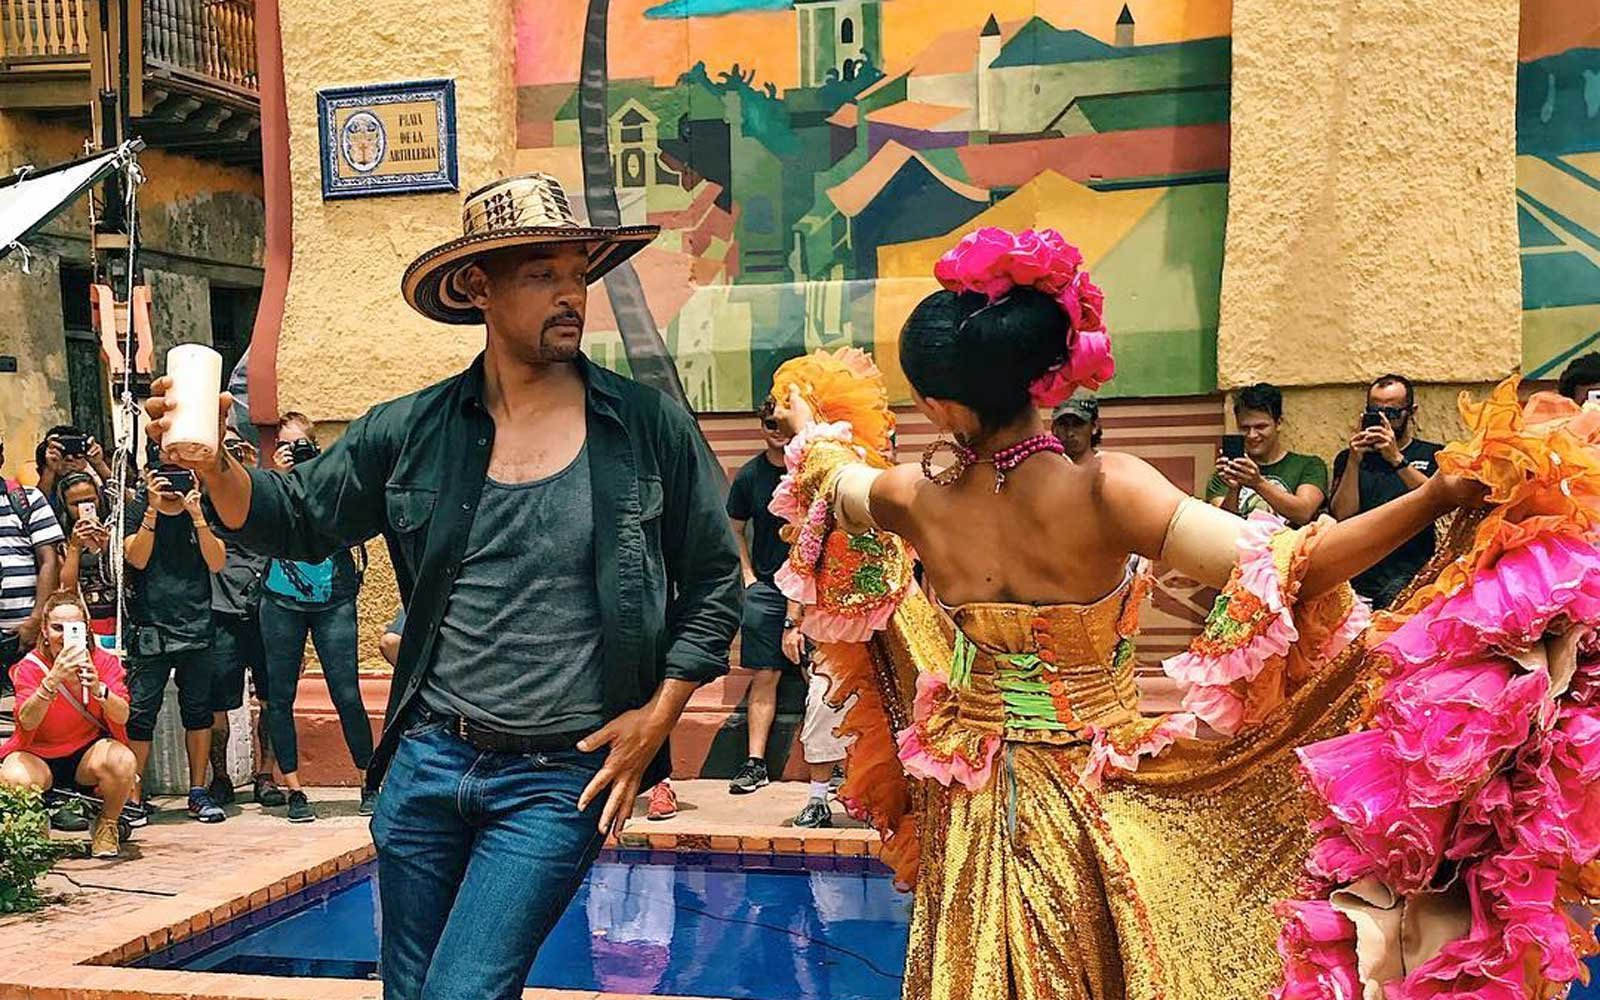 Will Smith dancing in Colombia